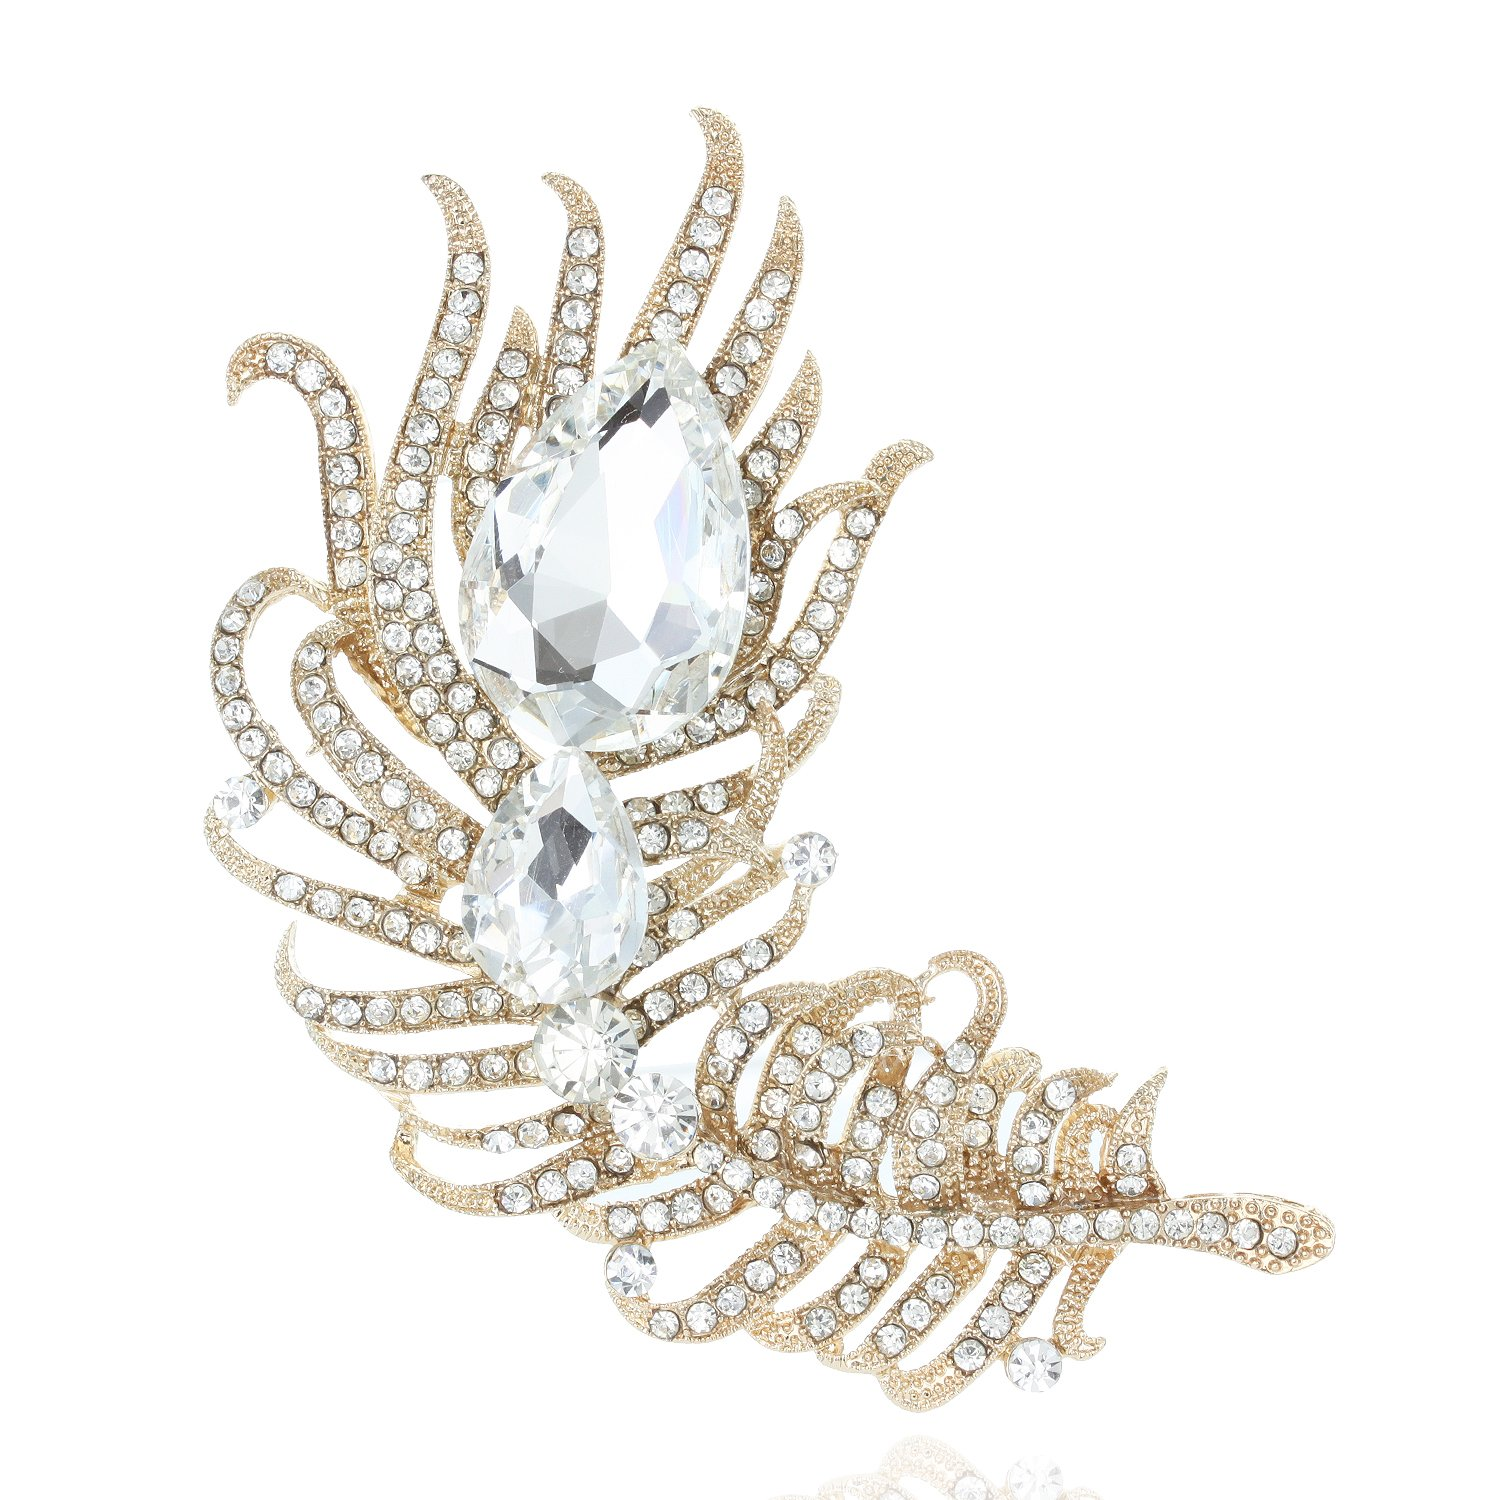 SP Sophia Collection Decorative Cubic Zirconia Rhinestone Pave Peacock Feather Fashion Dress Brooch in Gold